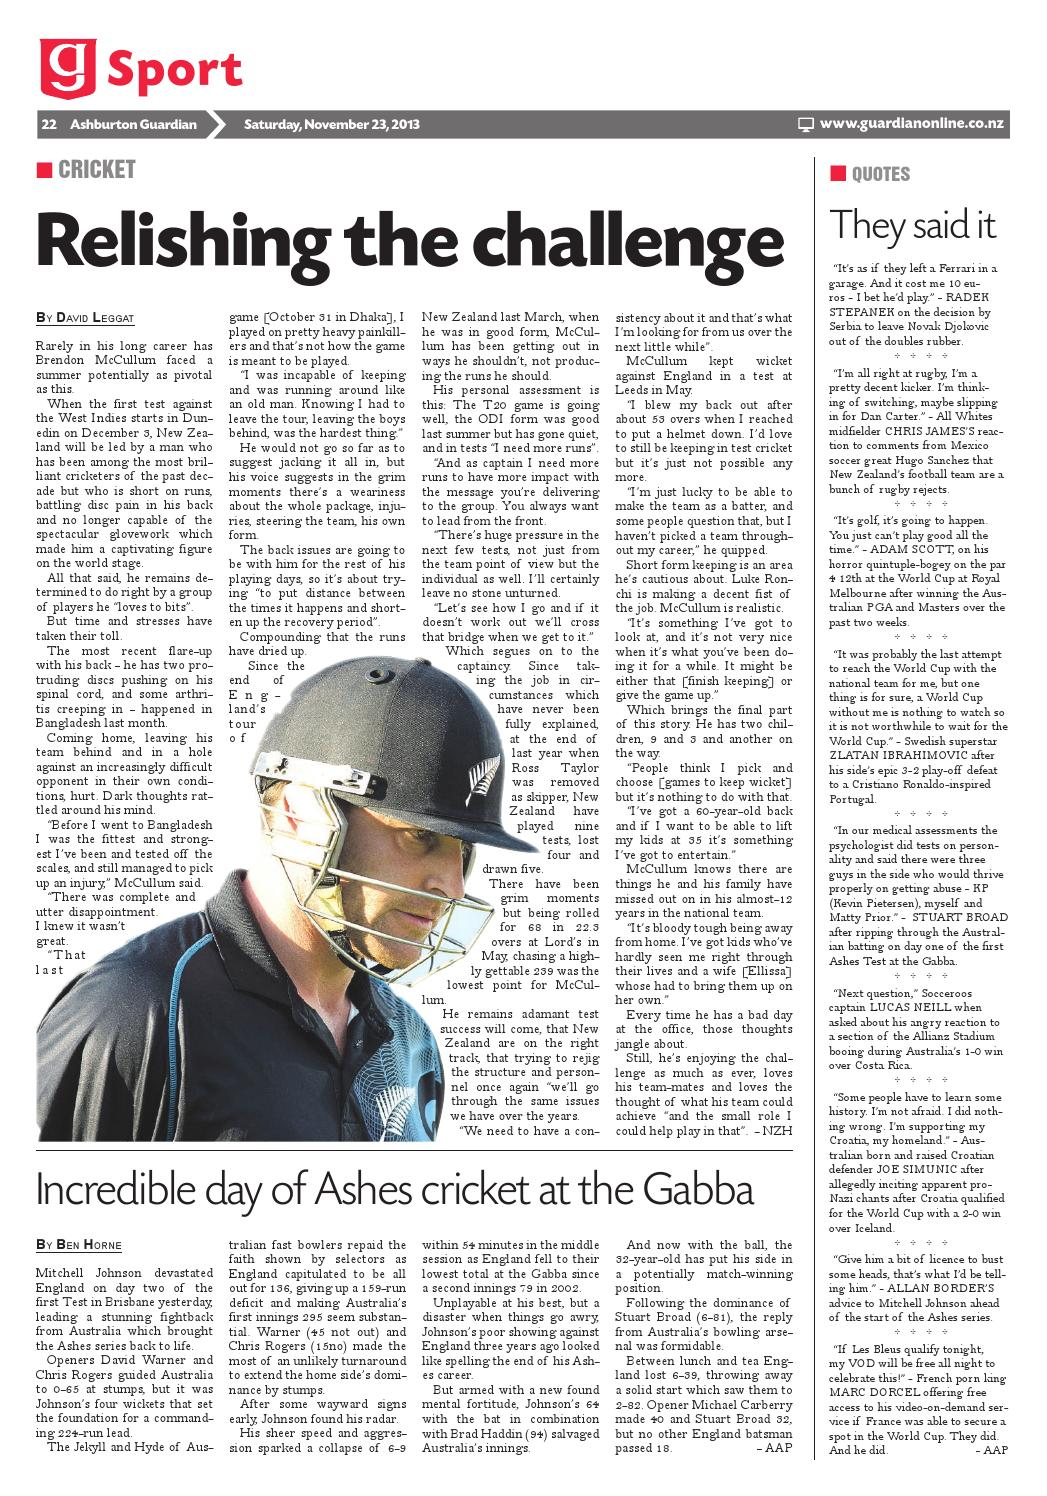 Ashburton Guardian, Saturday, November 23, 2013 by Ashburton